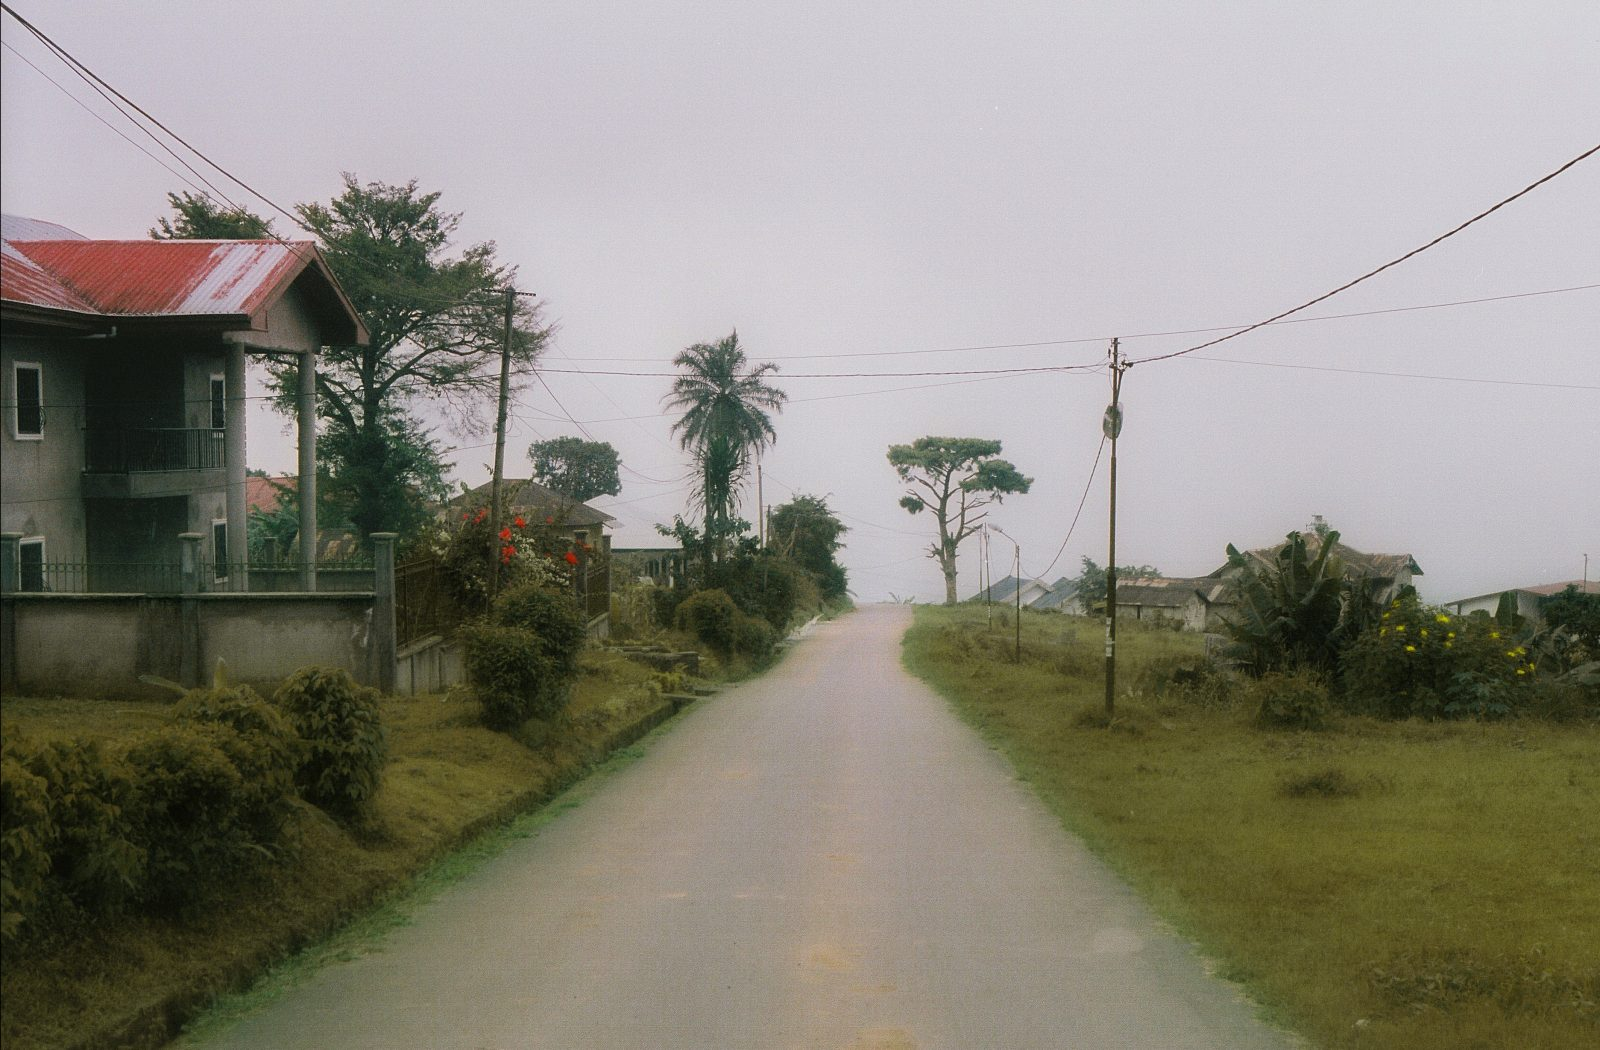 Photographing summer in Cameroon